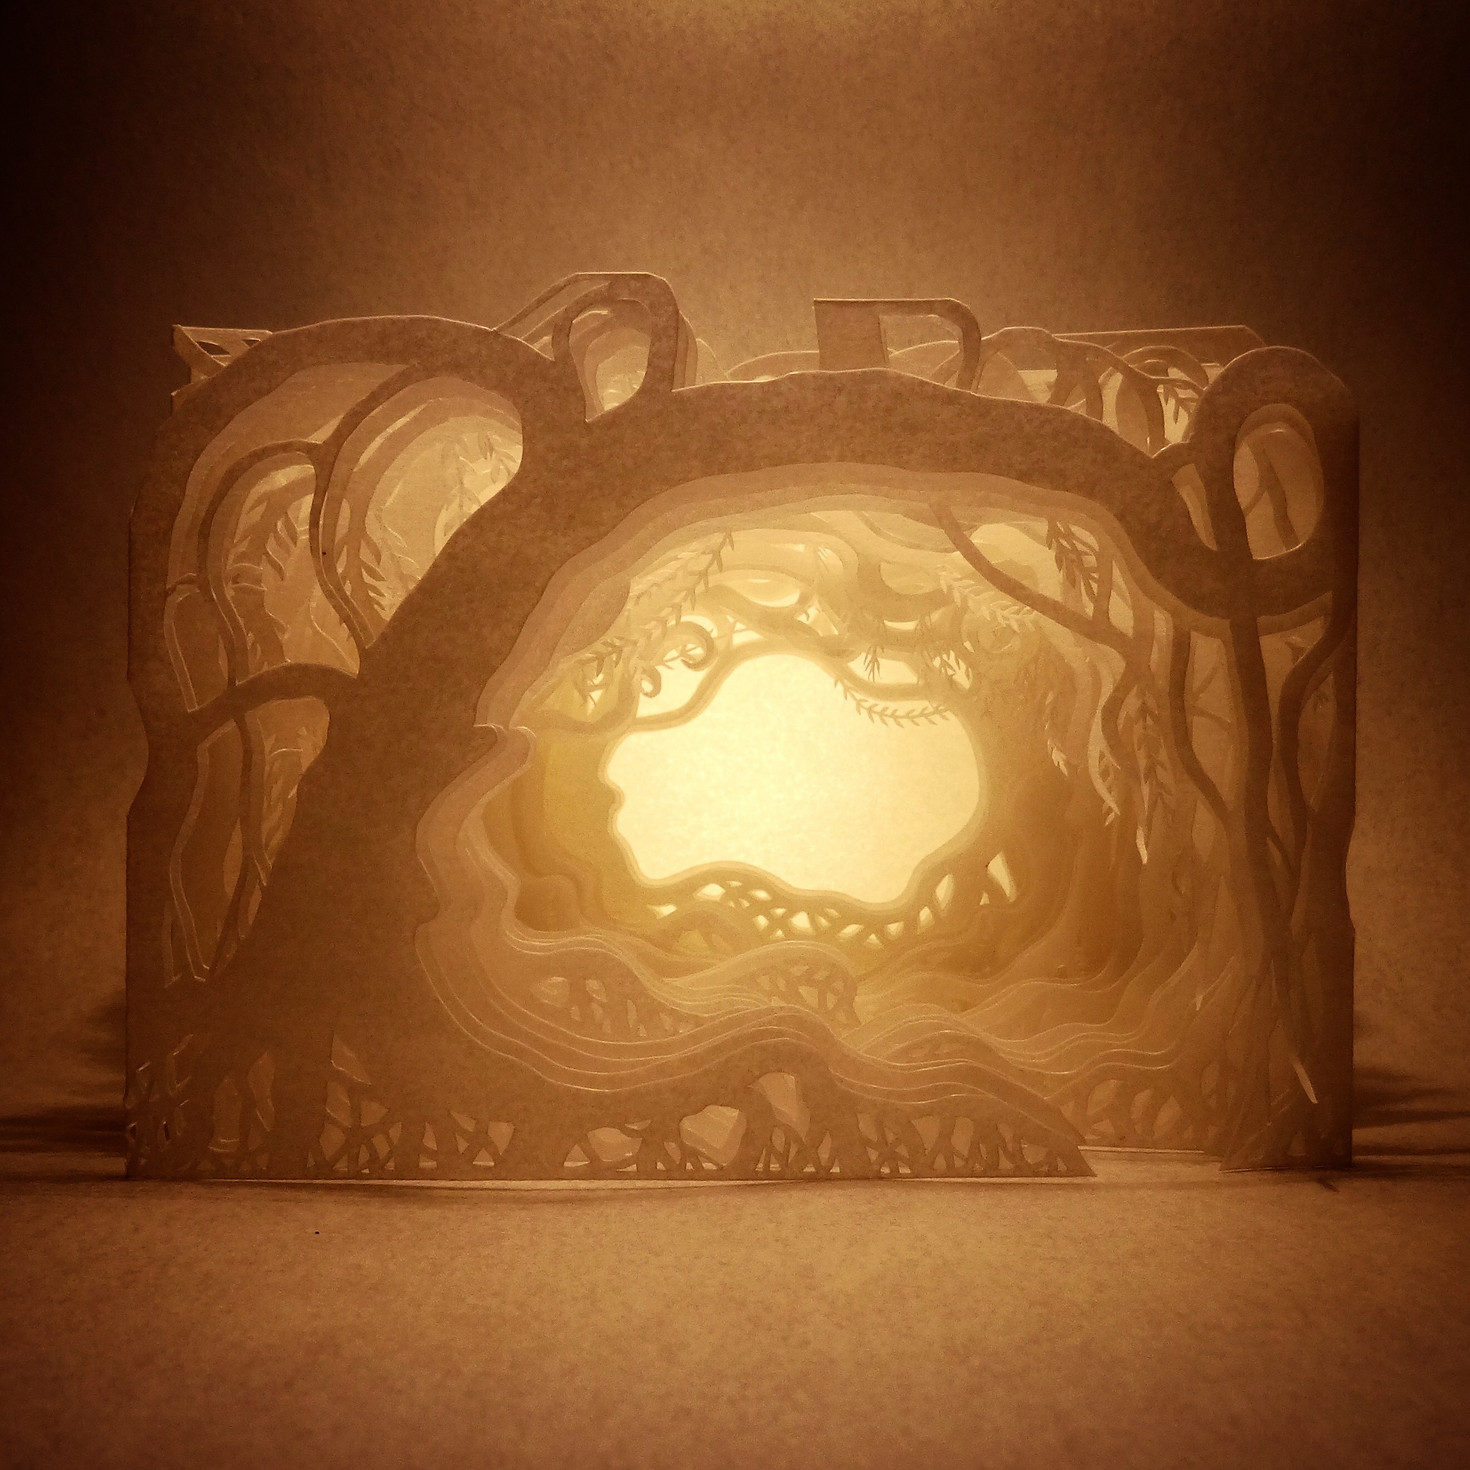 A photo of a paper creation by Ayumi Shibata - it's a 3D cut out of a path through a creepy wood with a light at the end of it. All the trees are curvy and spread out.